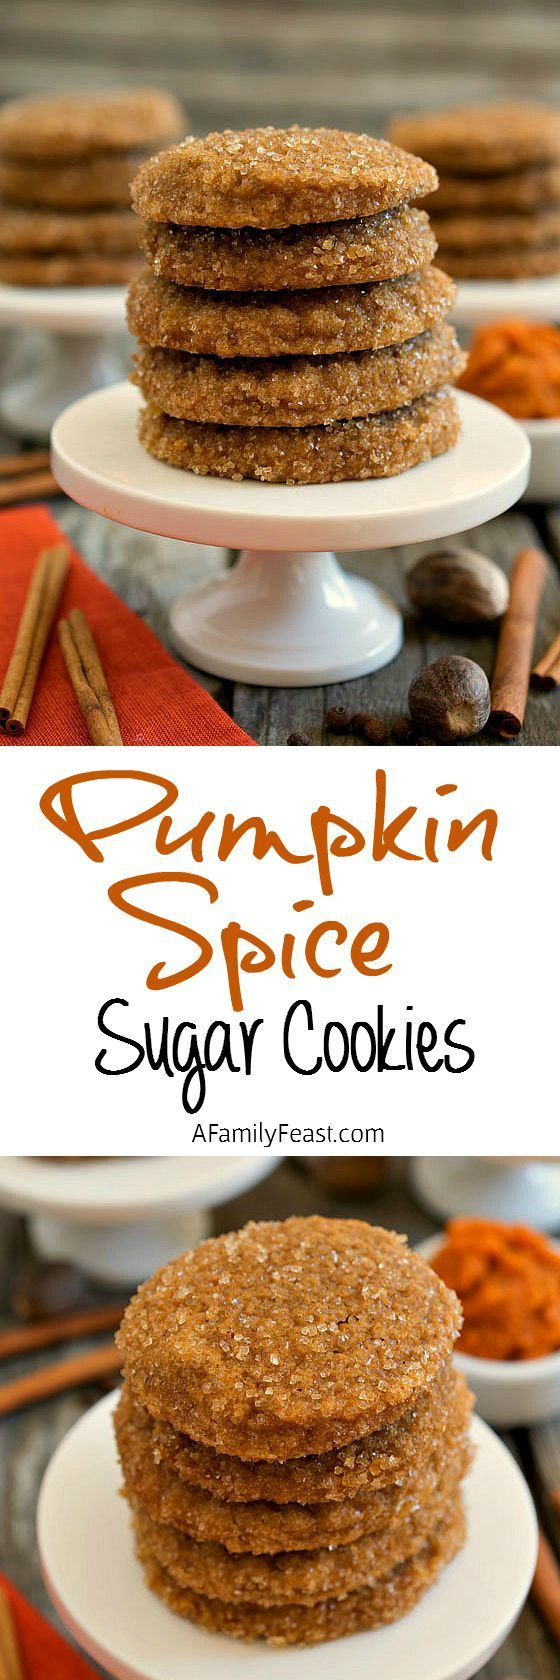 Pumpkin Spice Sugar Cookies - Moist, light and incredibly delicious ...